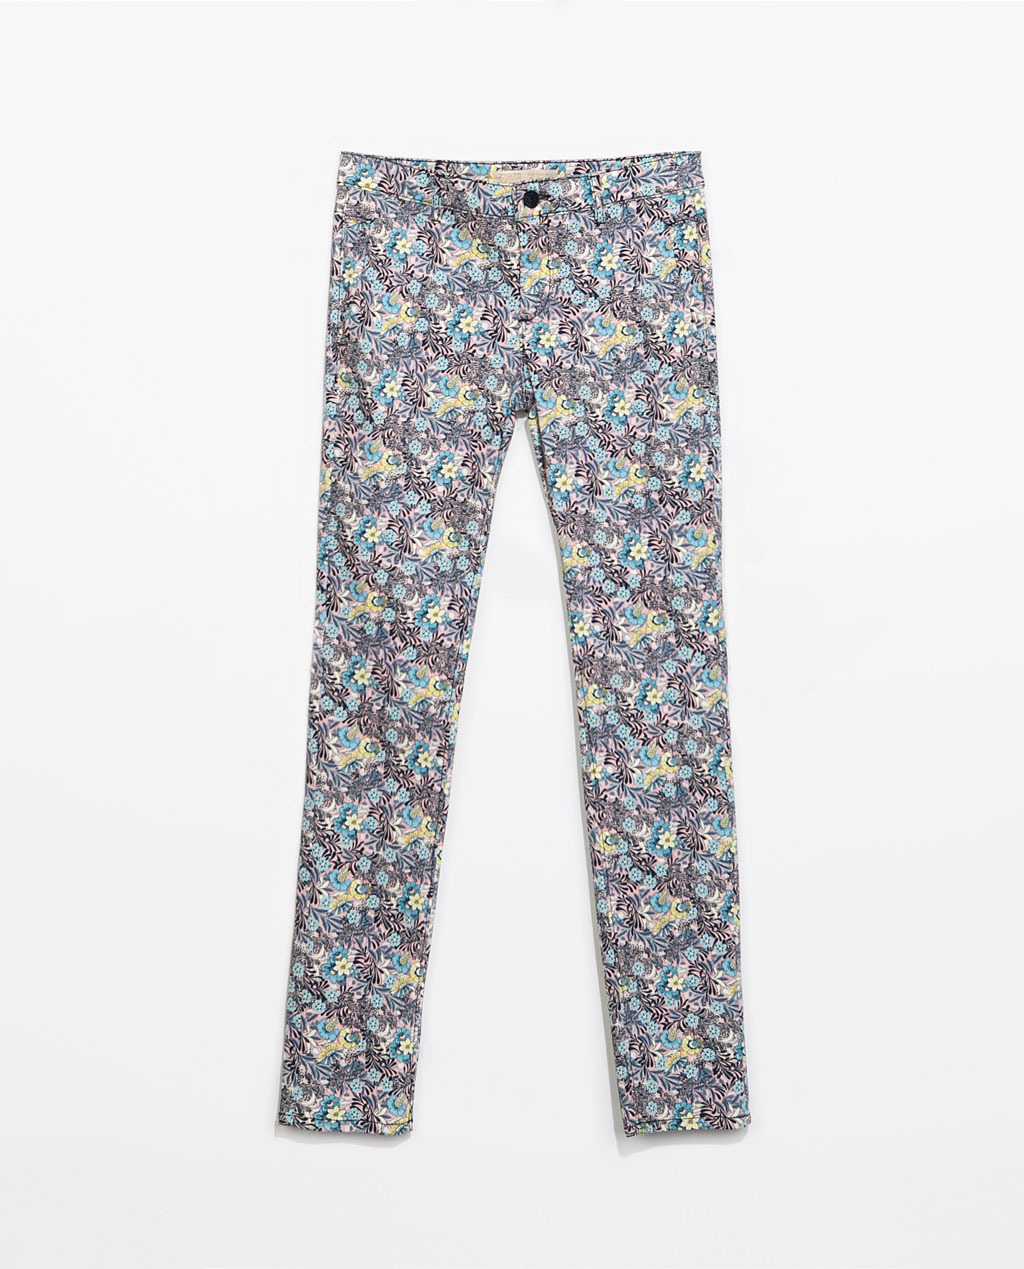 5 Pocket Printed Trousers - length: standard; waist: mid/regular rise; occasions: casual, evening, creative work; fibres: cotton - stretch; predominant colour: multicoloured; texture group: cotton feel fabrics; fit: slim leg; pattern type: fabric; pattern: florals; style: standard; trends: furious florals; season: s/s 2014; pattern size: standard (bottom); multicoloured: multicoloured